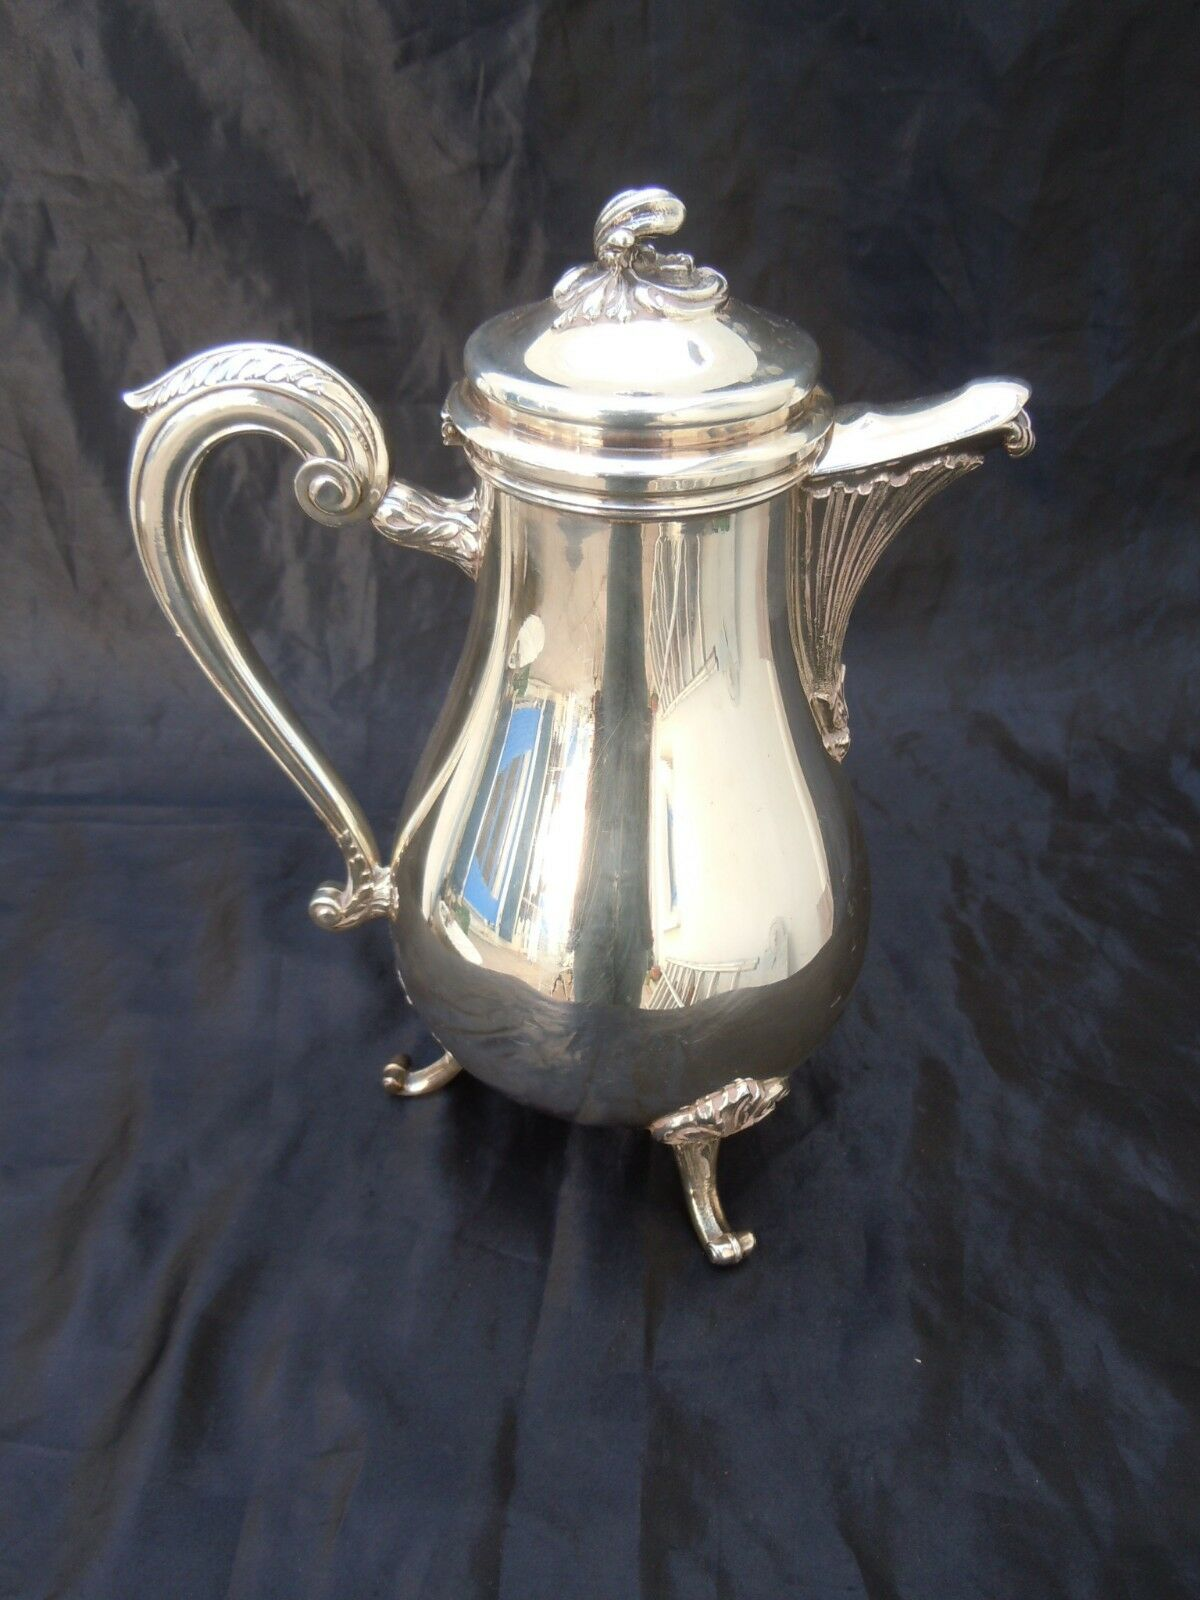 Verseuse cafetiere metal platae collection Gallia Christofle France mod Marly